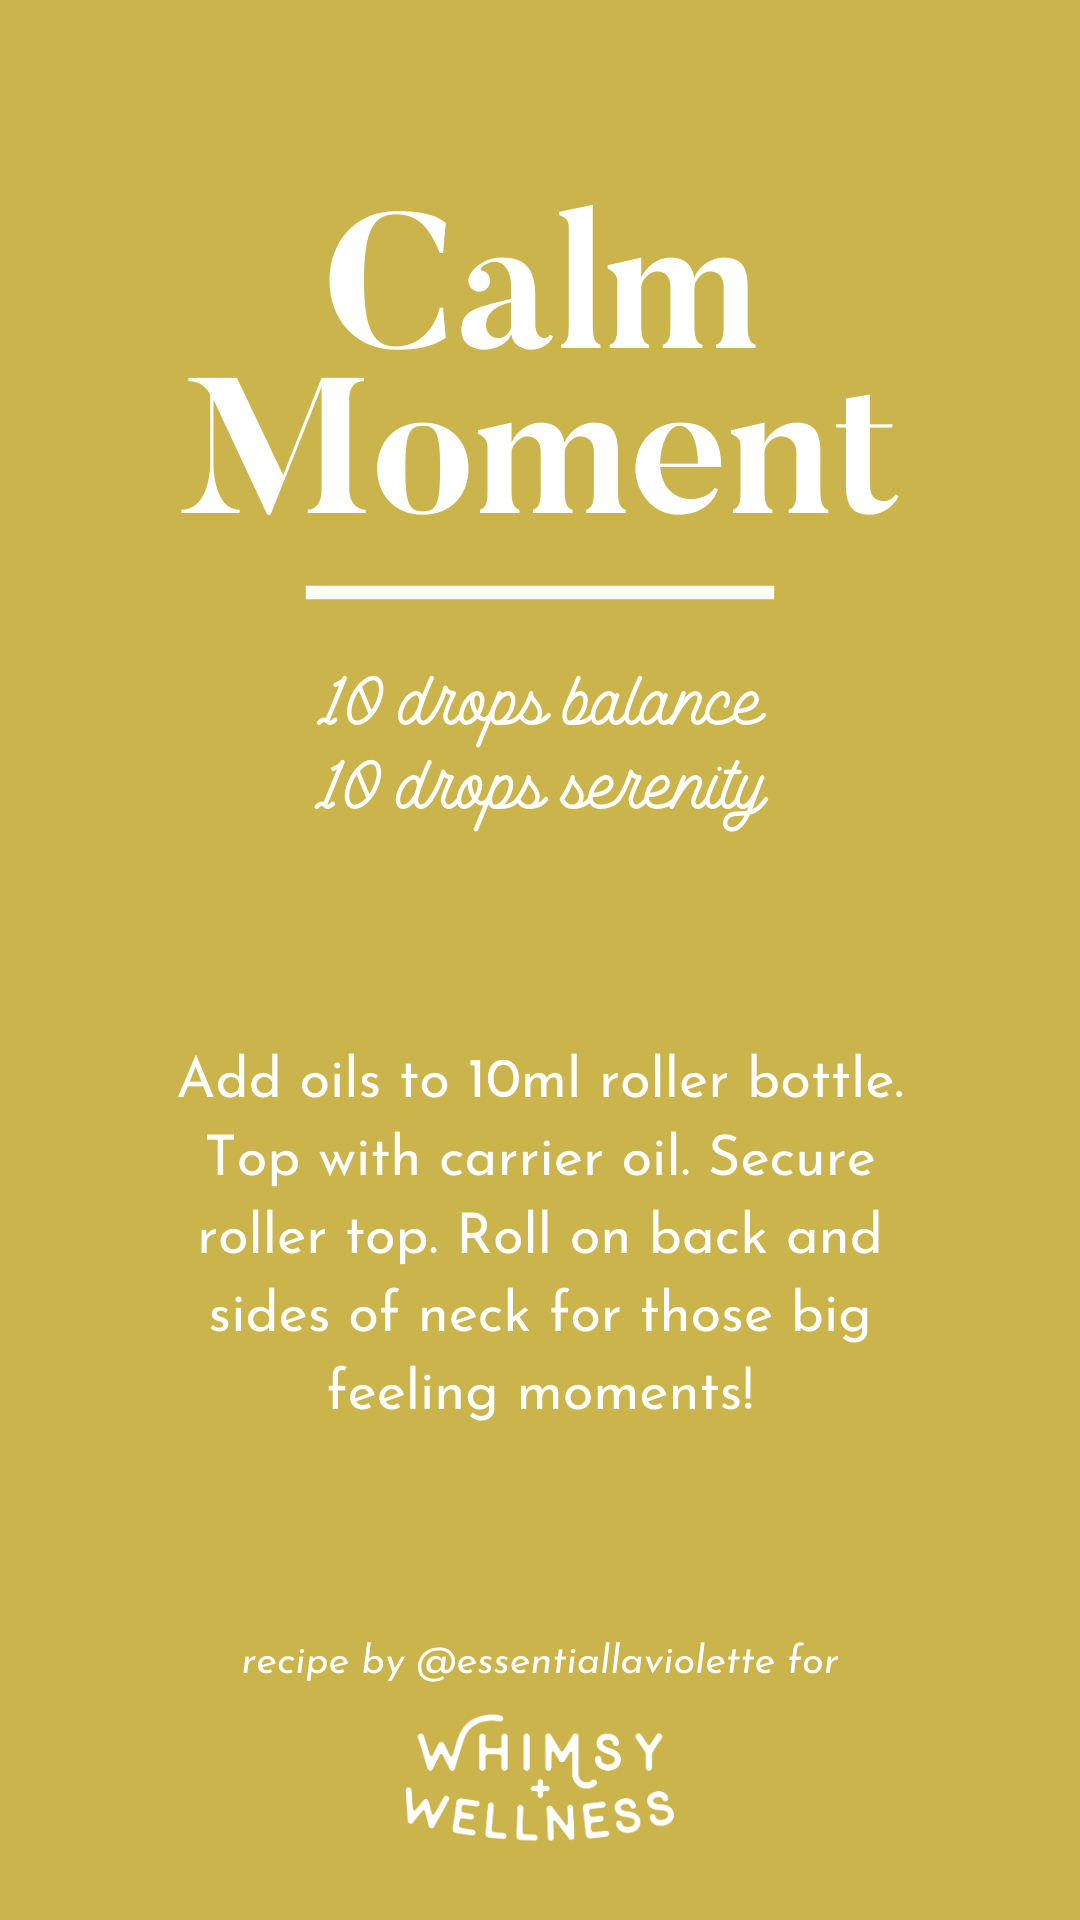 Summertime calm moment roller bottle recipe using doTERRA essential oils